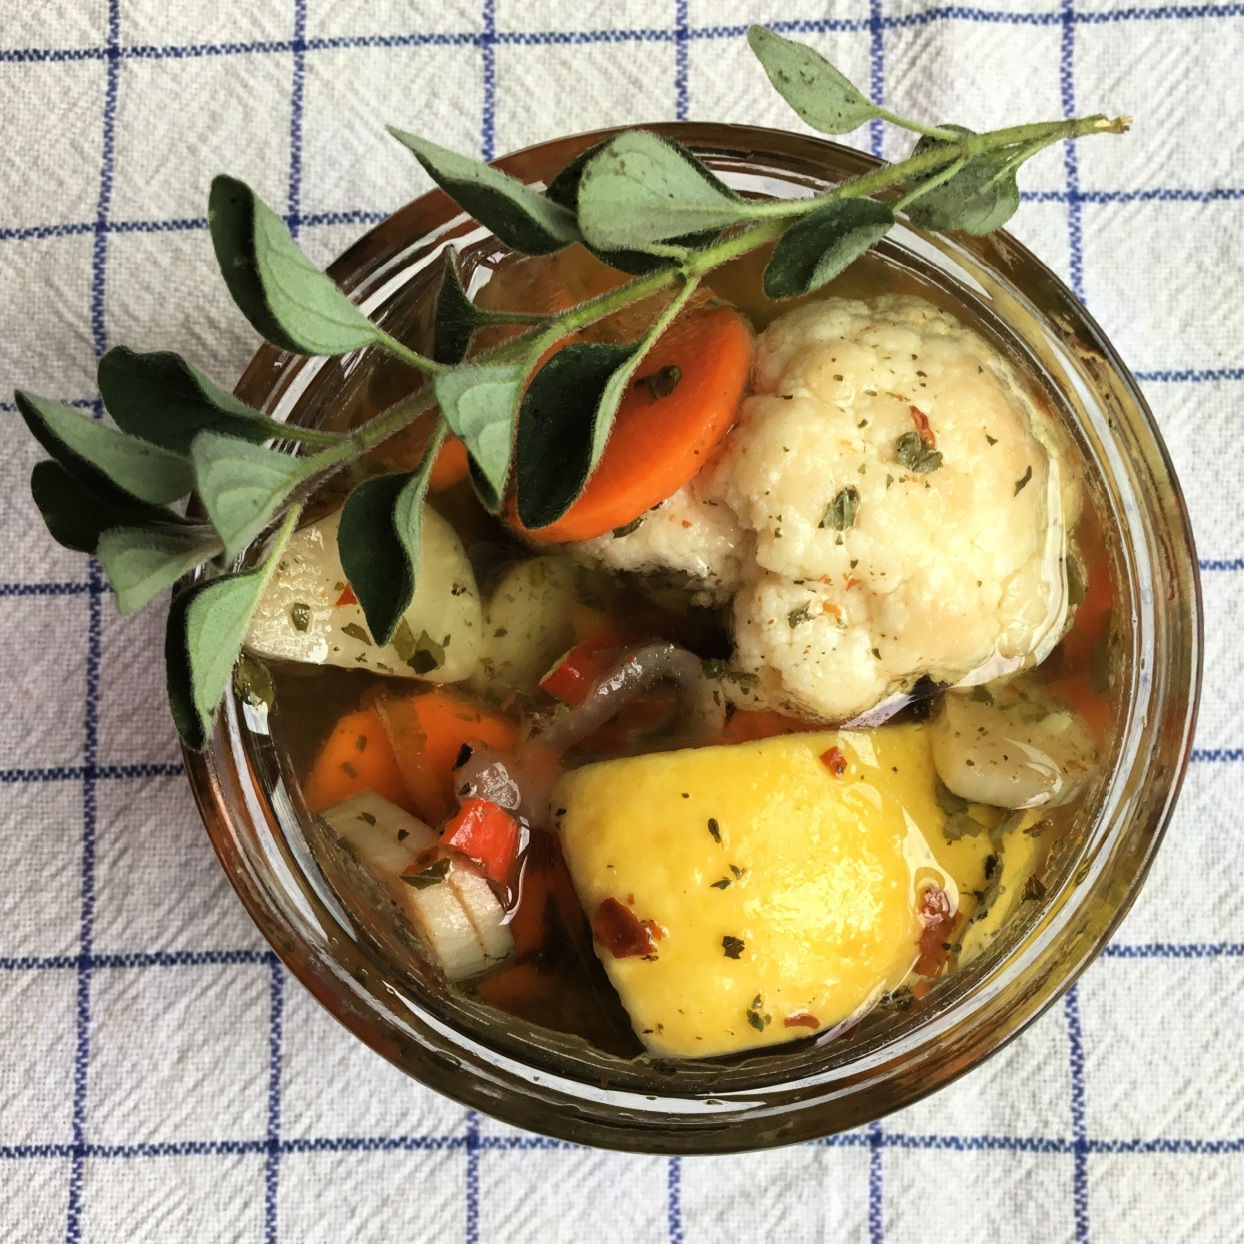 top-down view of a jar of vegetables ready for pickling: cauliflower, carrot slices, yellow squash, and fresh herbs